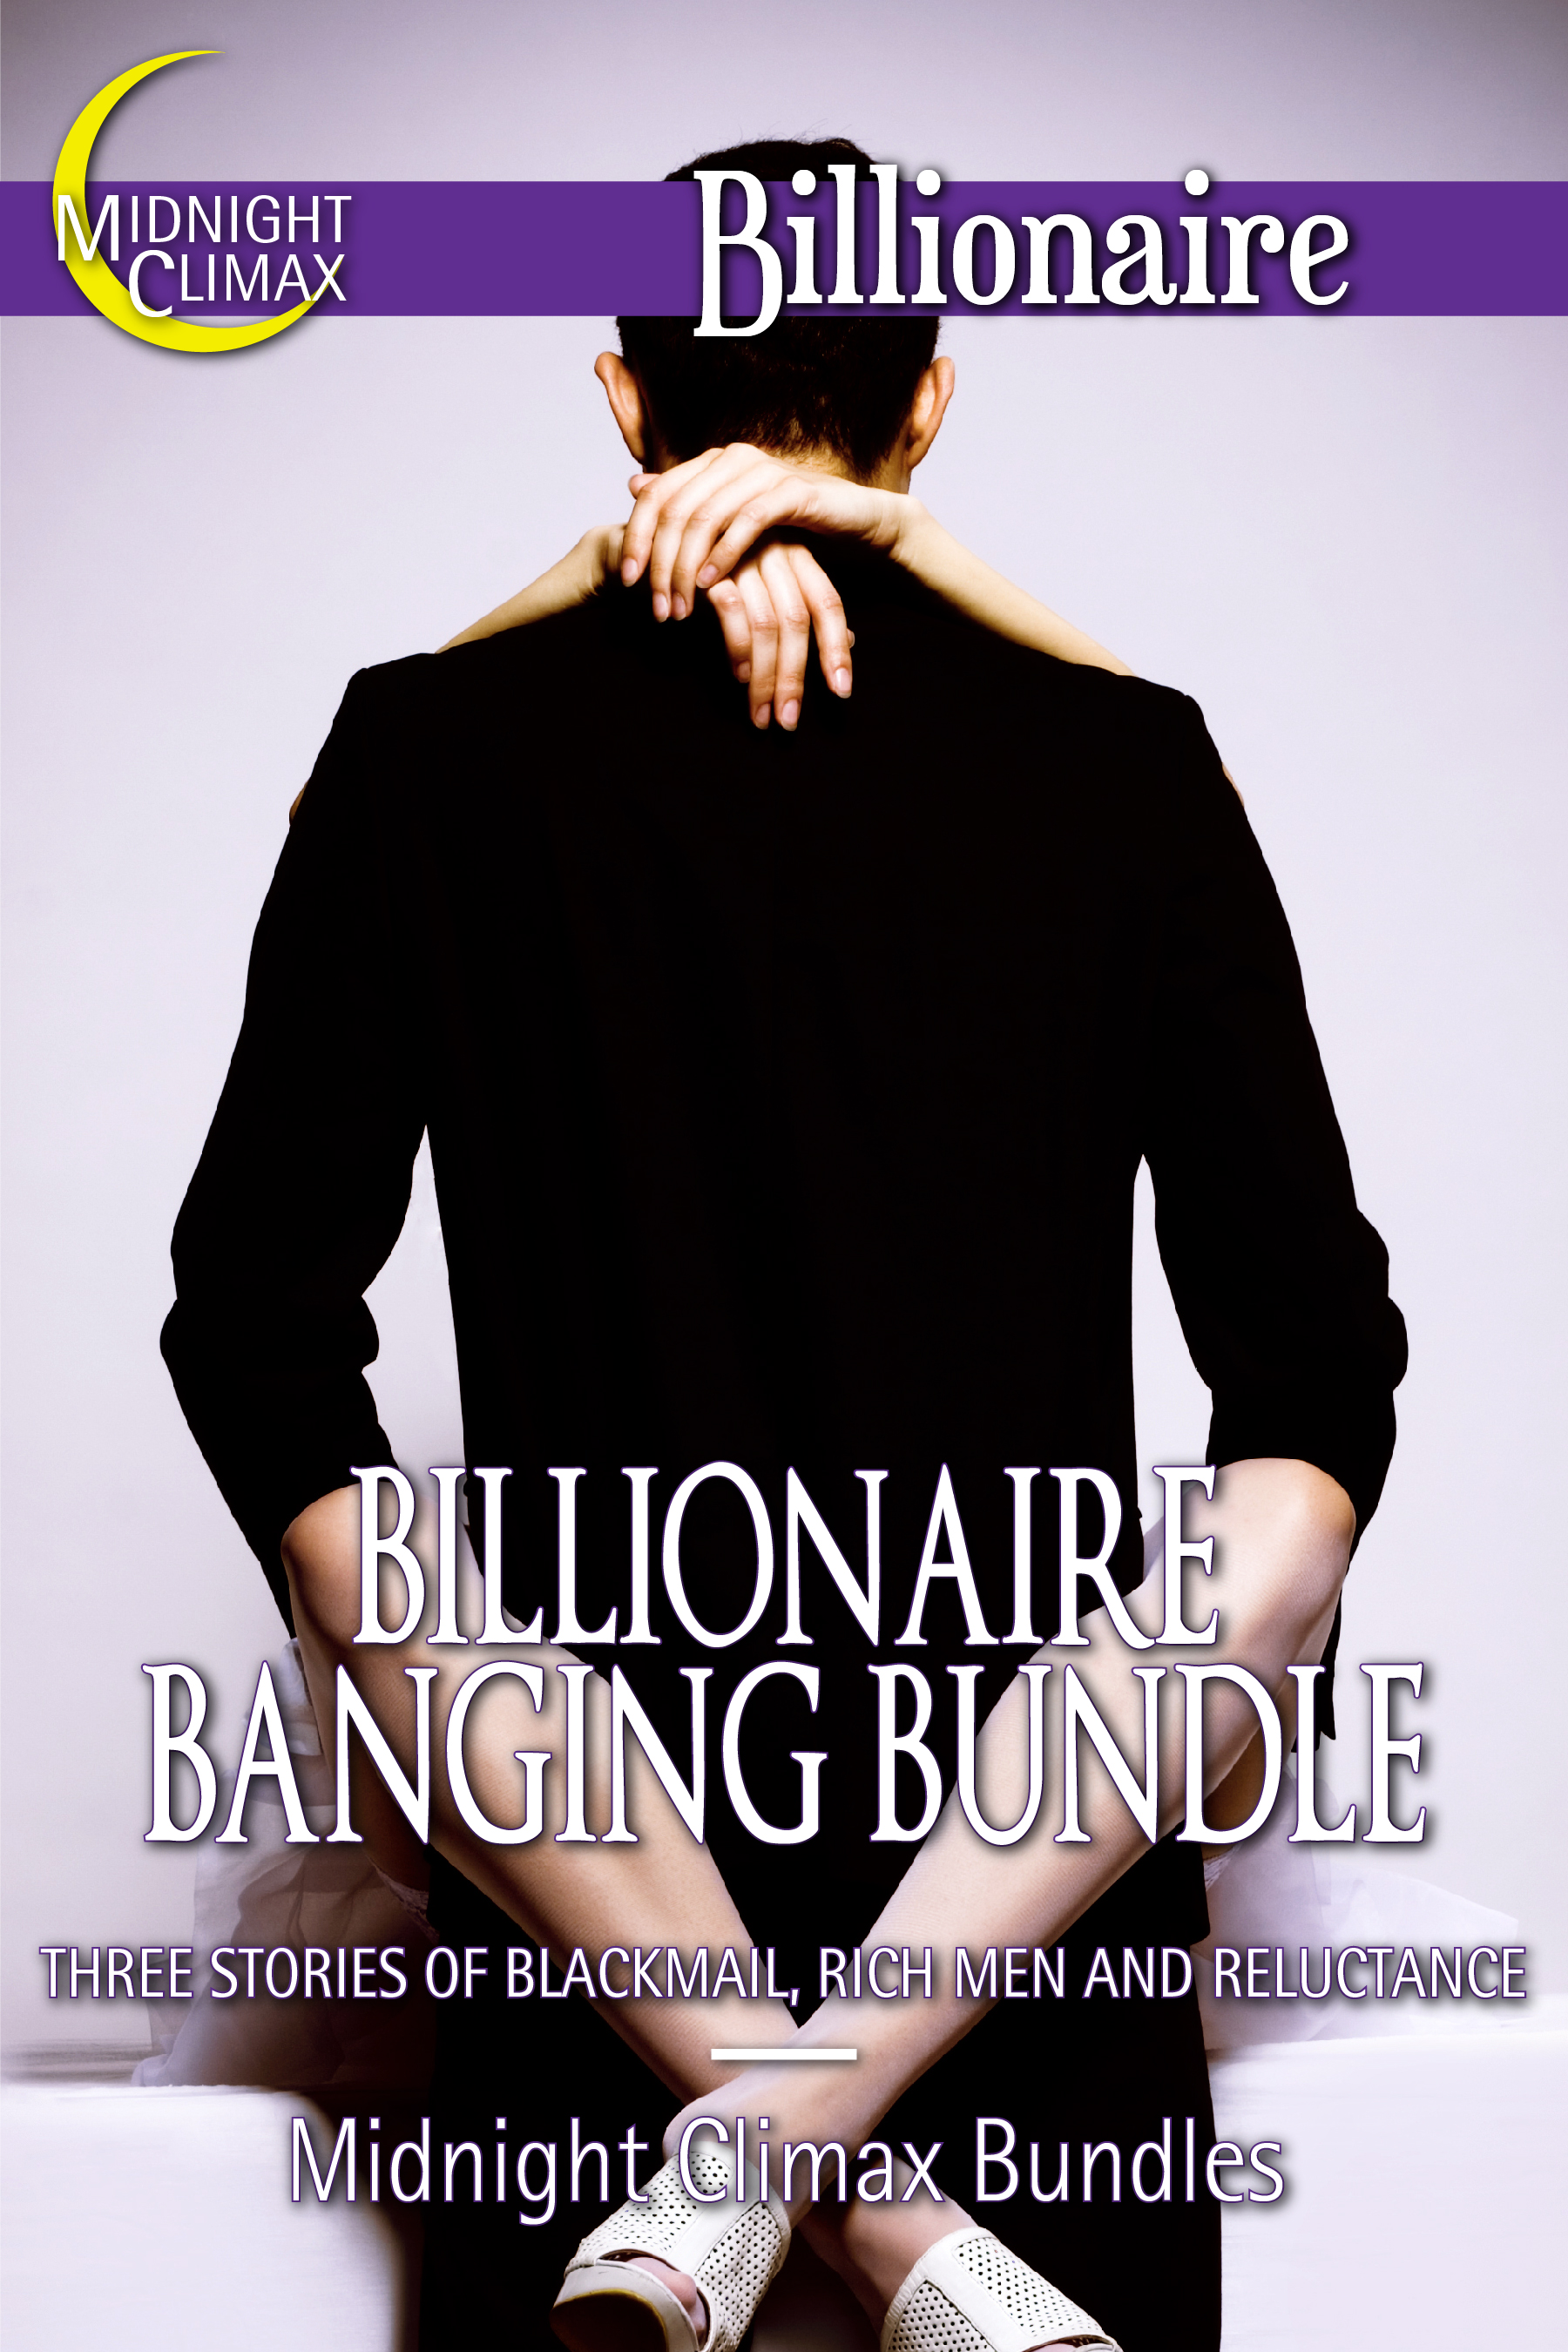 Midnight Climax Bundles - Billionaire Banging Bundle (Graphic Sexual Scenes of Maids, Blackmail and More!)